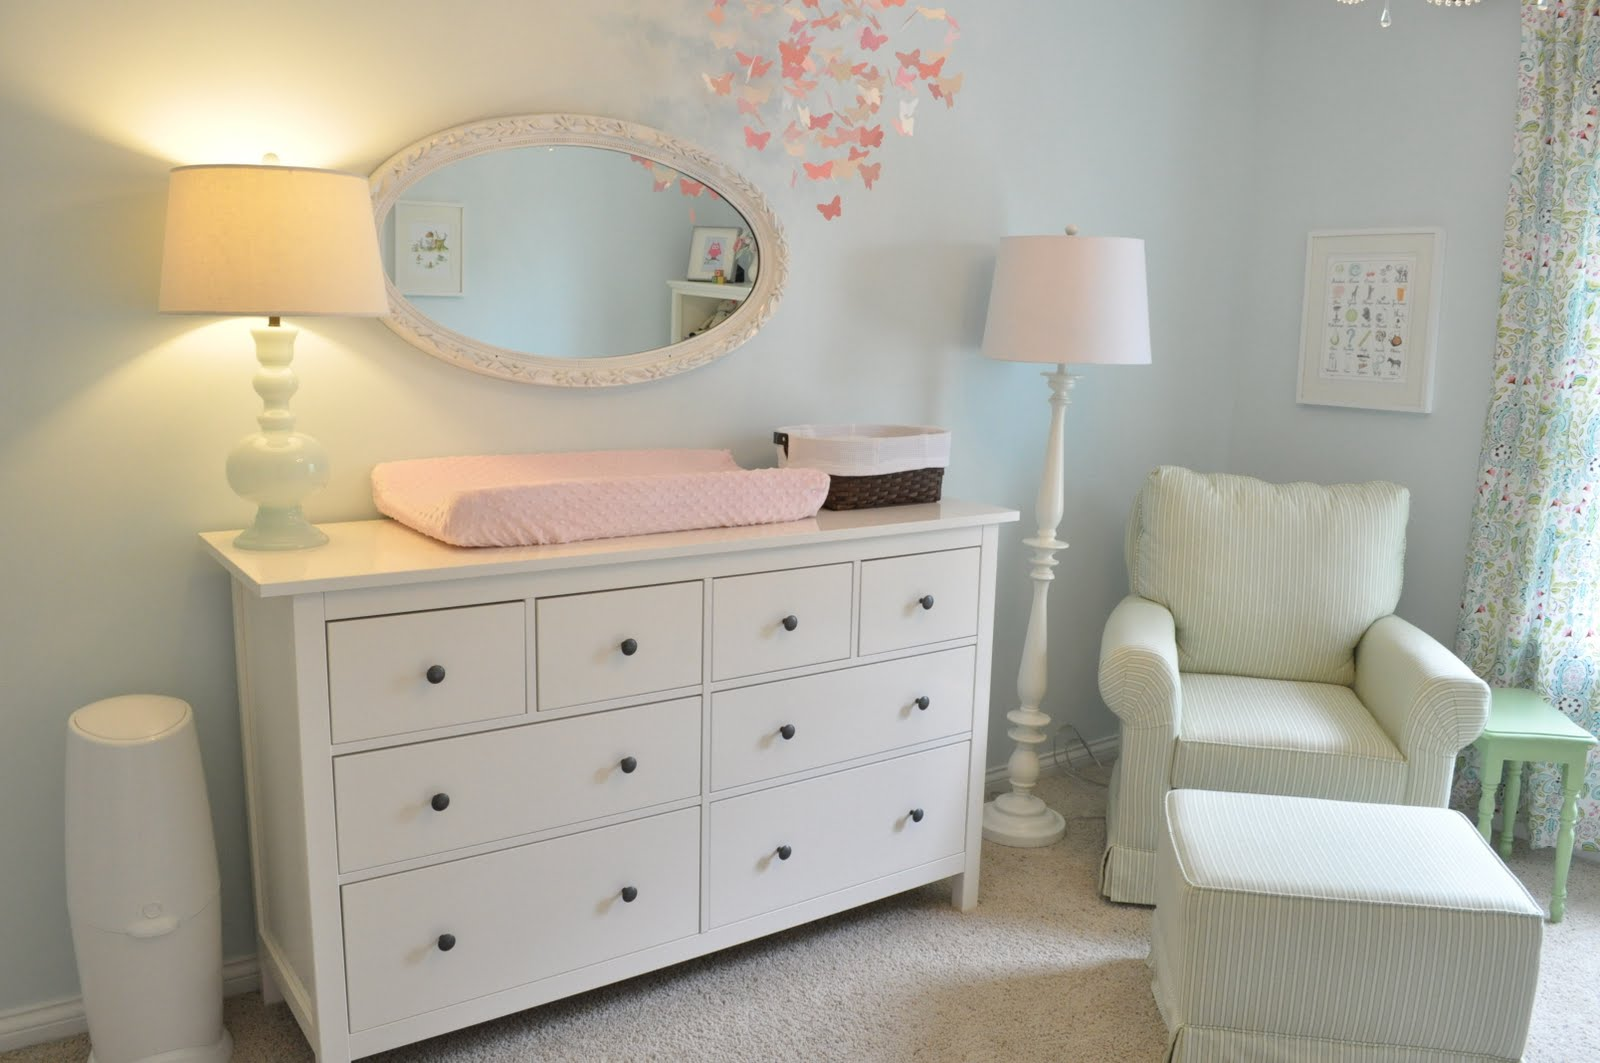 Ikea Schreibtisch Zusammenstellen ~ Anyone have pics of Ikea Hemnes dresser in nursery? — The Bump